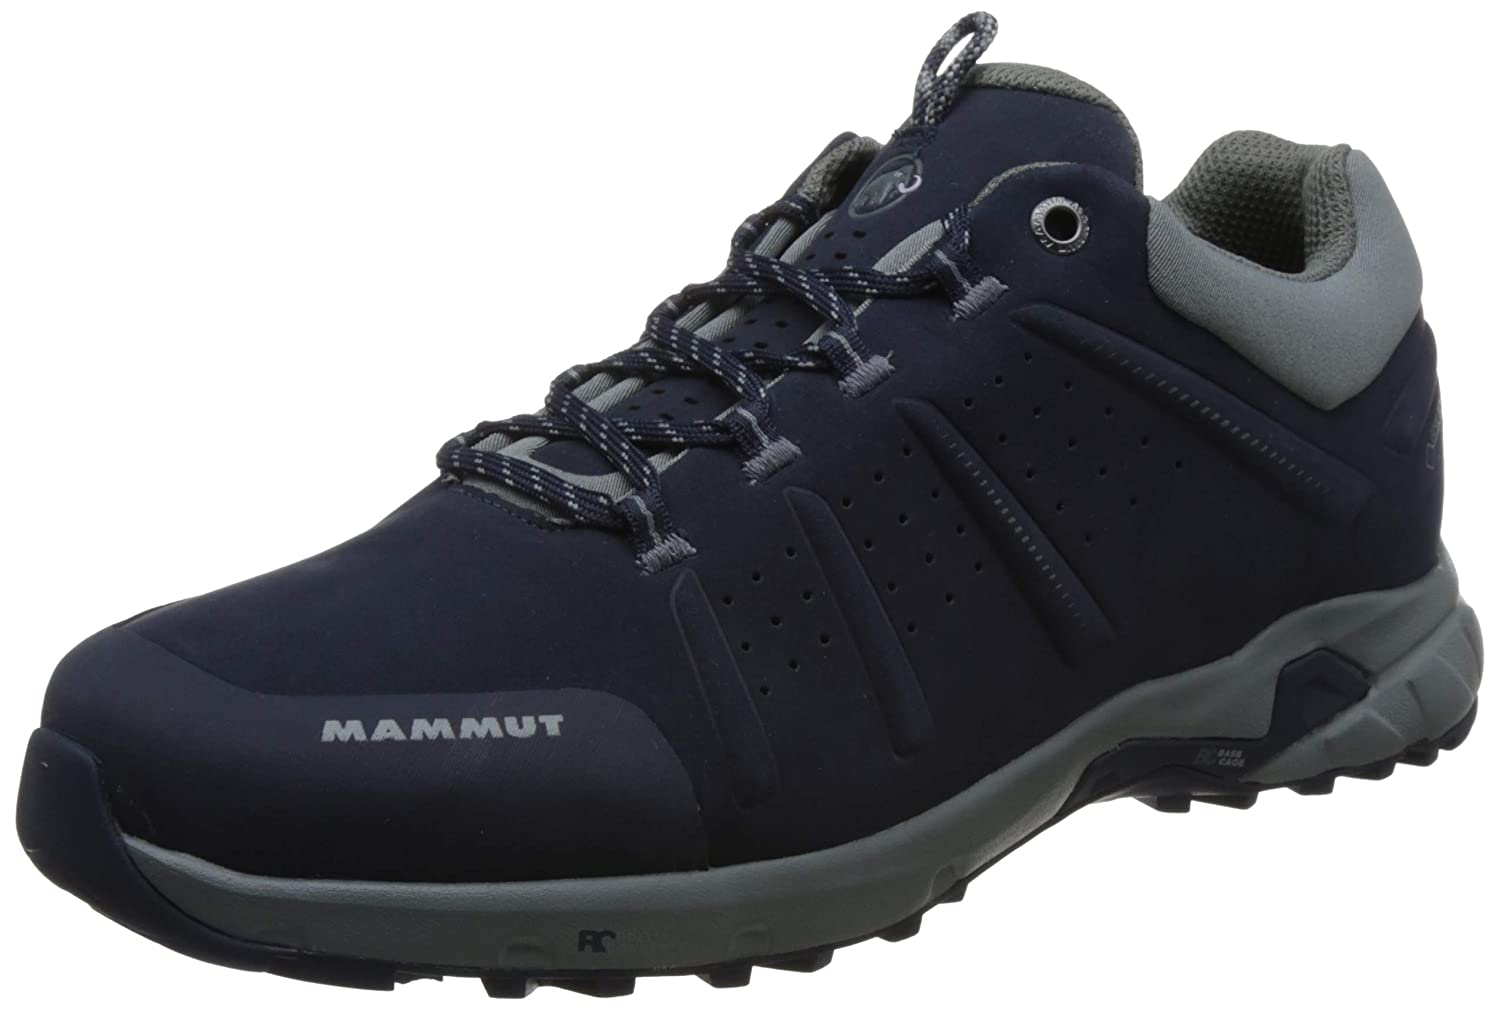 fashion outlet store cheap Mammut Convey Low GTX Hiking Boots - Men's, Marine-Grey, US 8,  3030-03220-50115-US 8